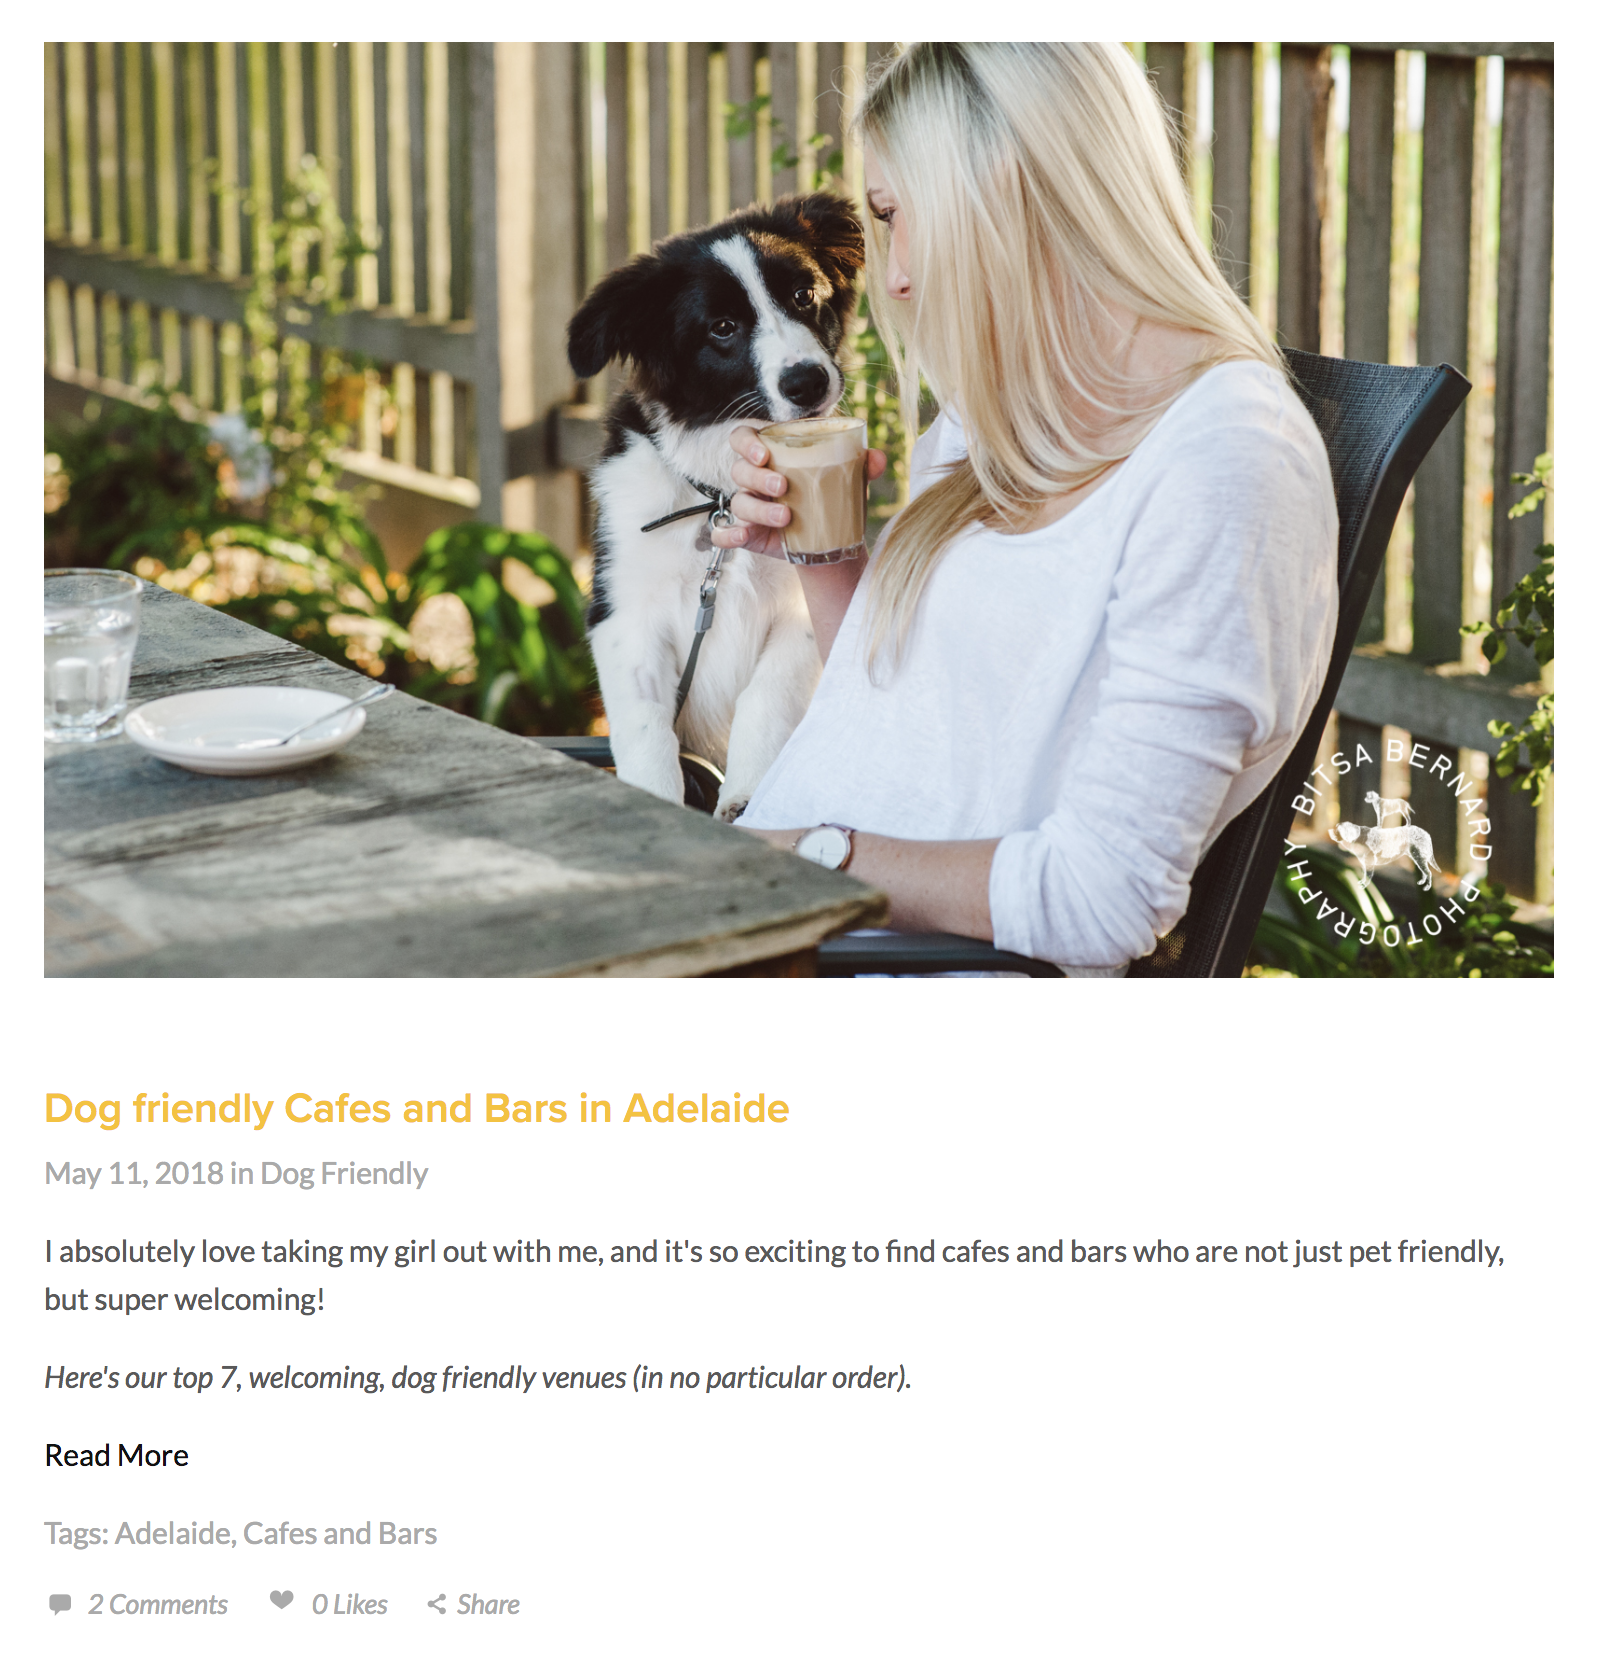 Kirstie's Blog Post - Linking to dog friendly businesses around Adelaide helps her SEO and also plants the seed for potential future partnerships